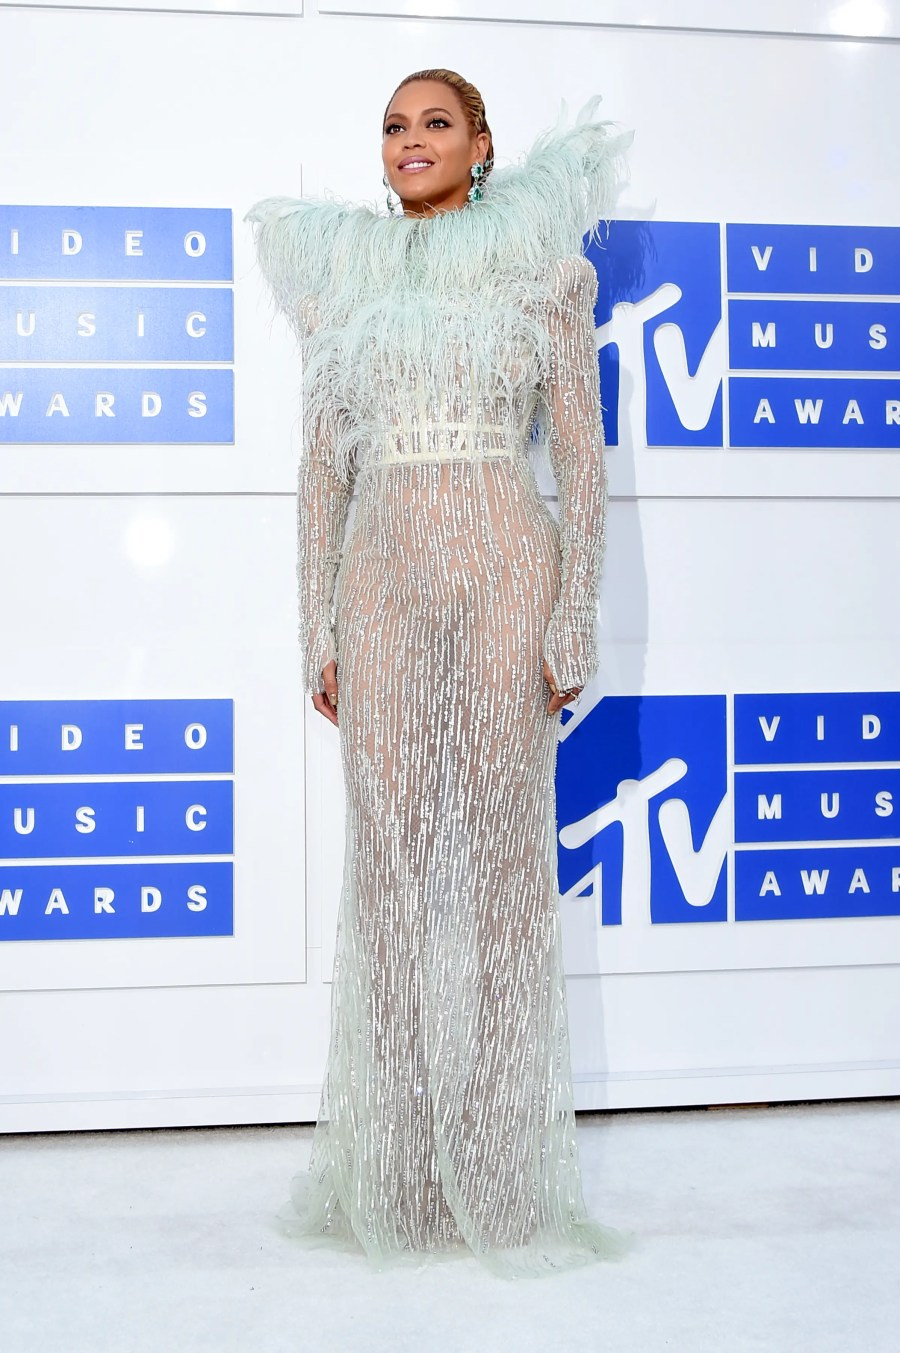 NEW YORK, NY - AUGUST 28: Beyonce attends the 2016 MTV Video Music Awards at Madison Square Garden on August 28, 2016 in New York City. Larry Busacca/Getty Images for MTV/AFP